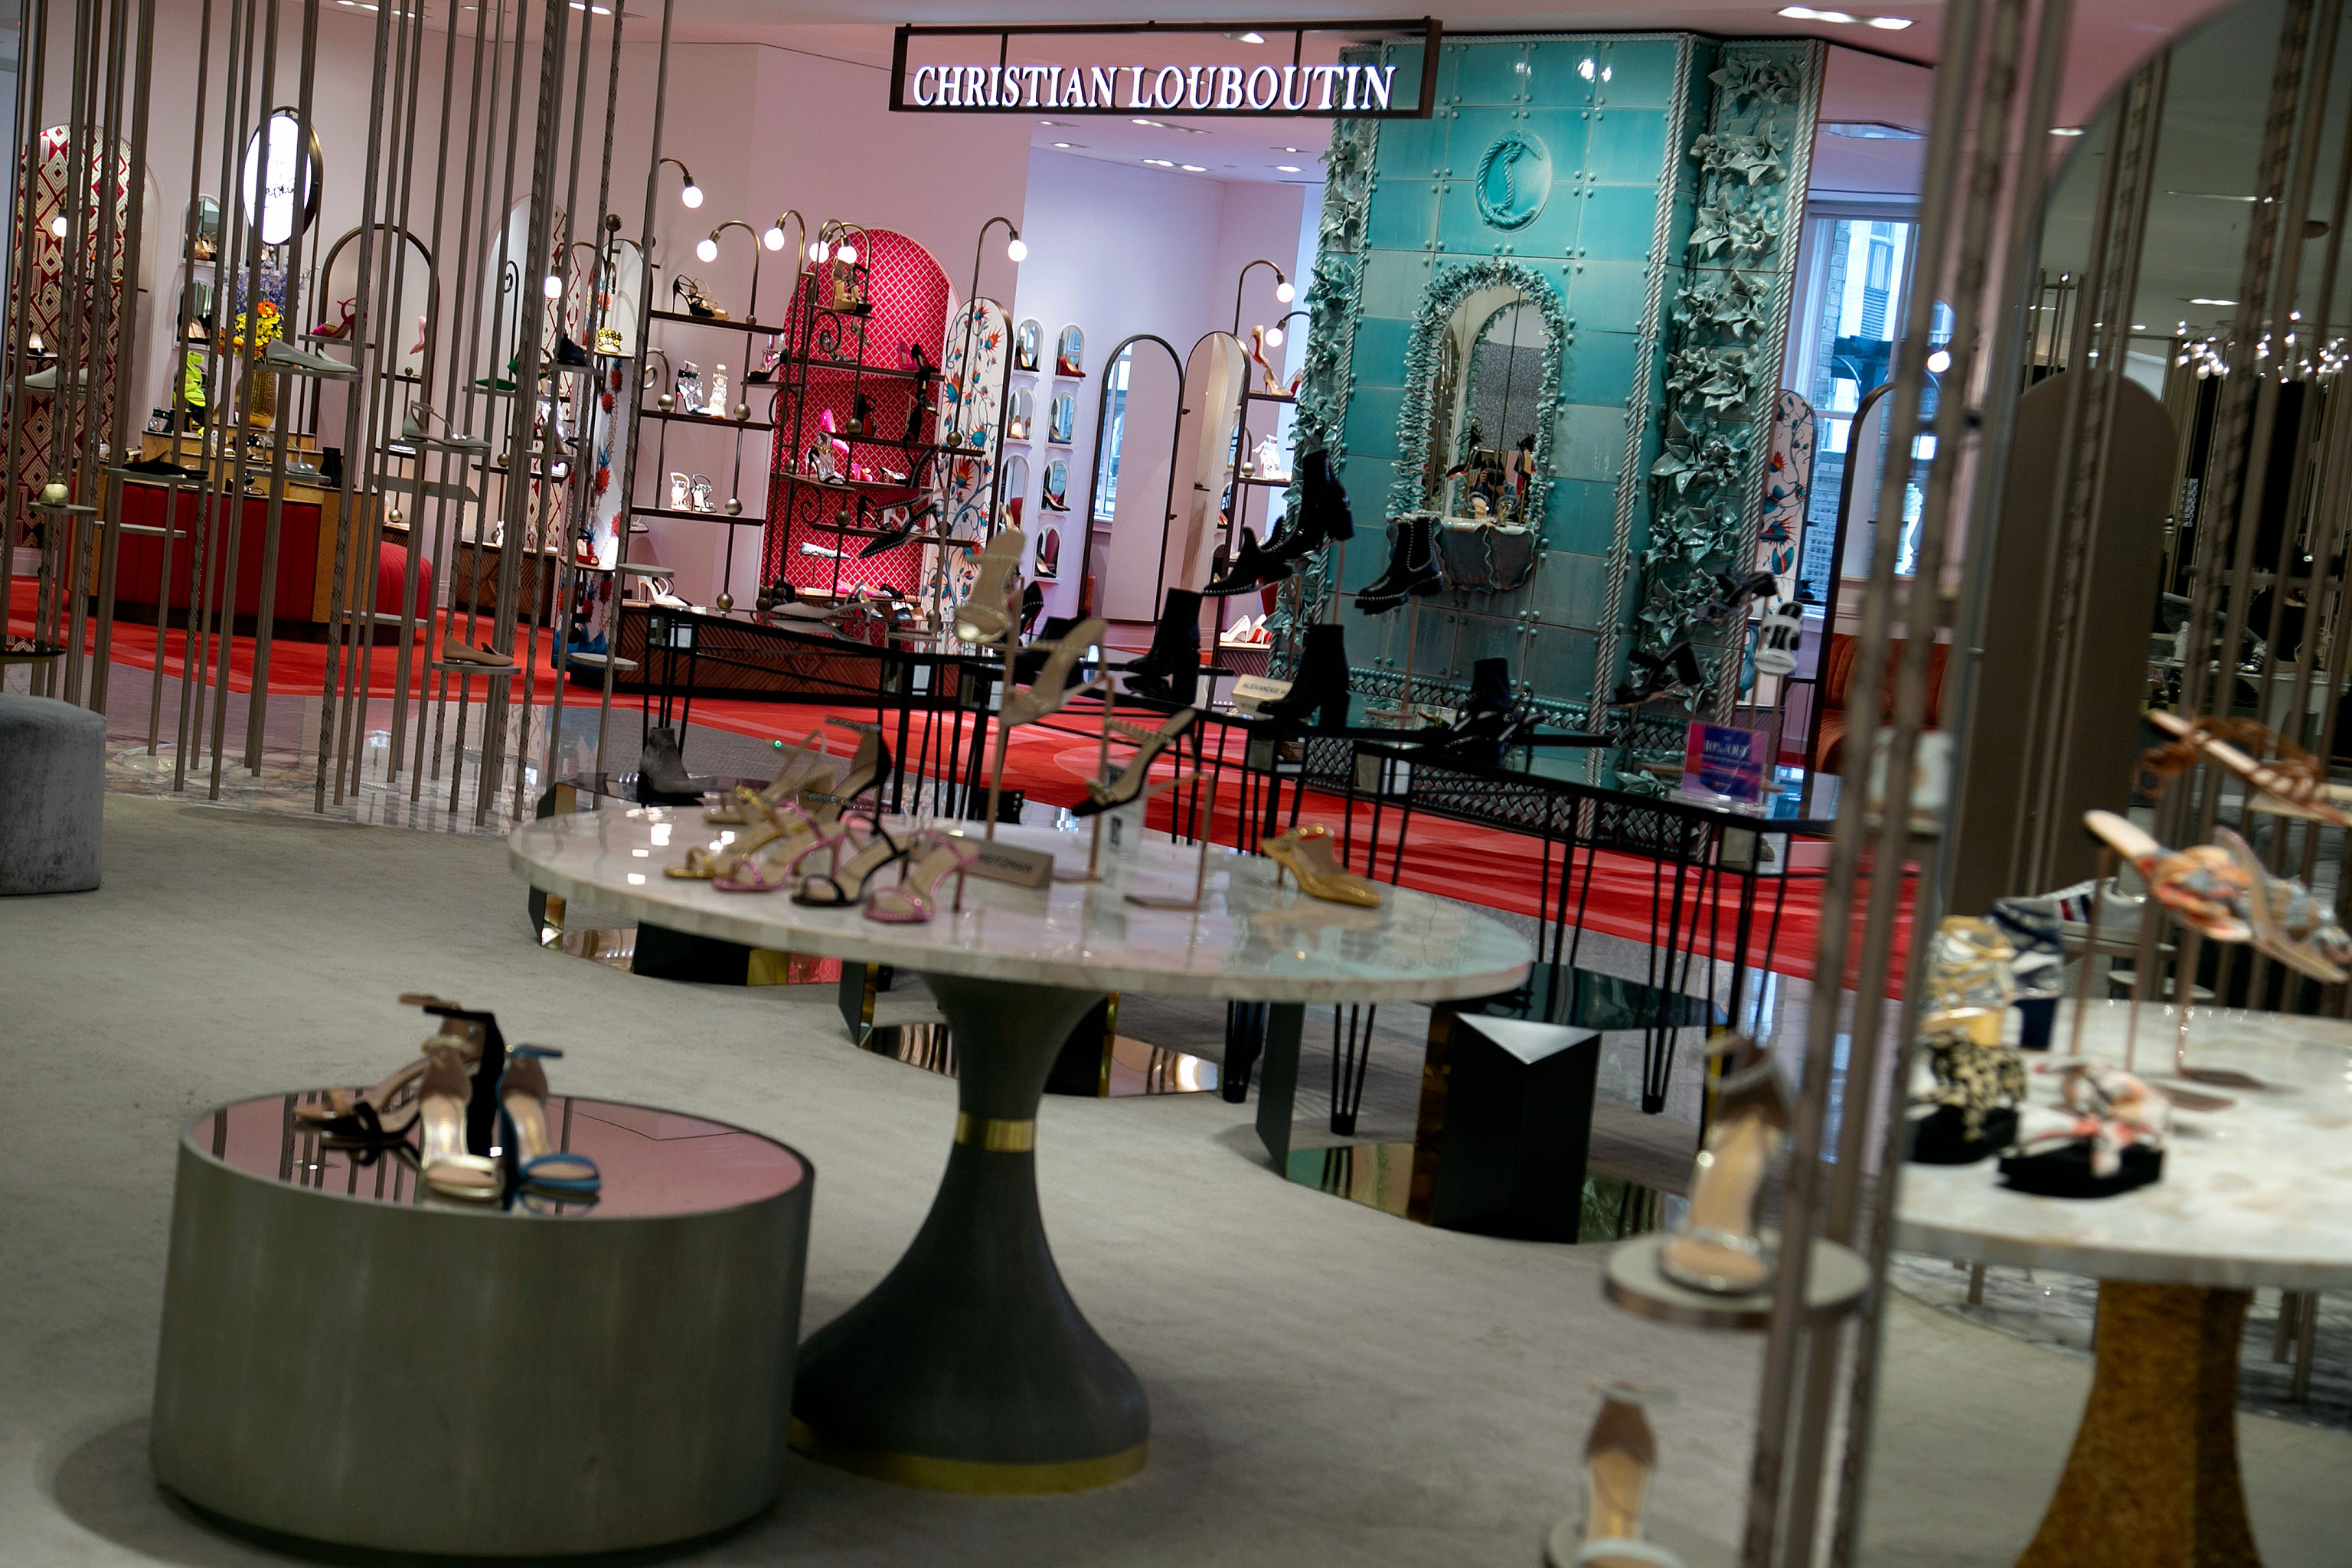 Christian Louboutin's shop-in-shop features a ceramic fountain and aged brass vines.